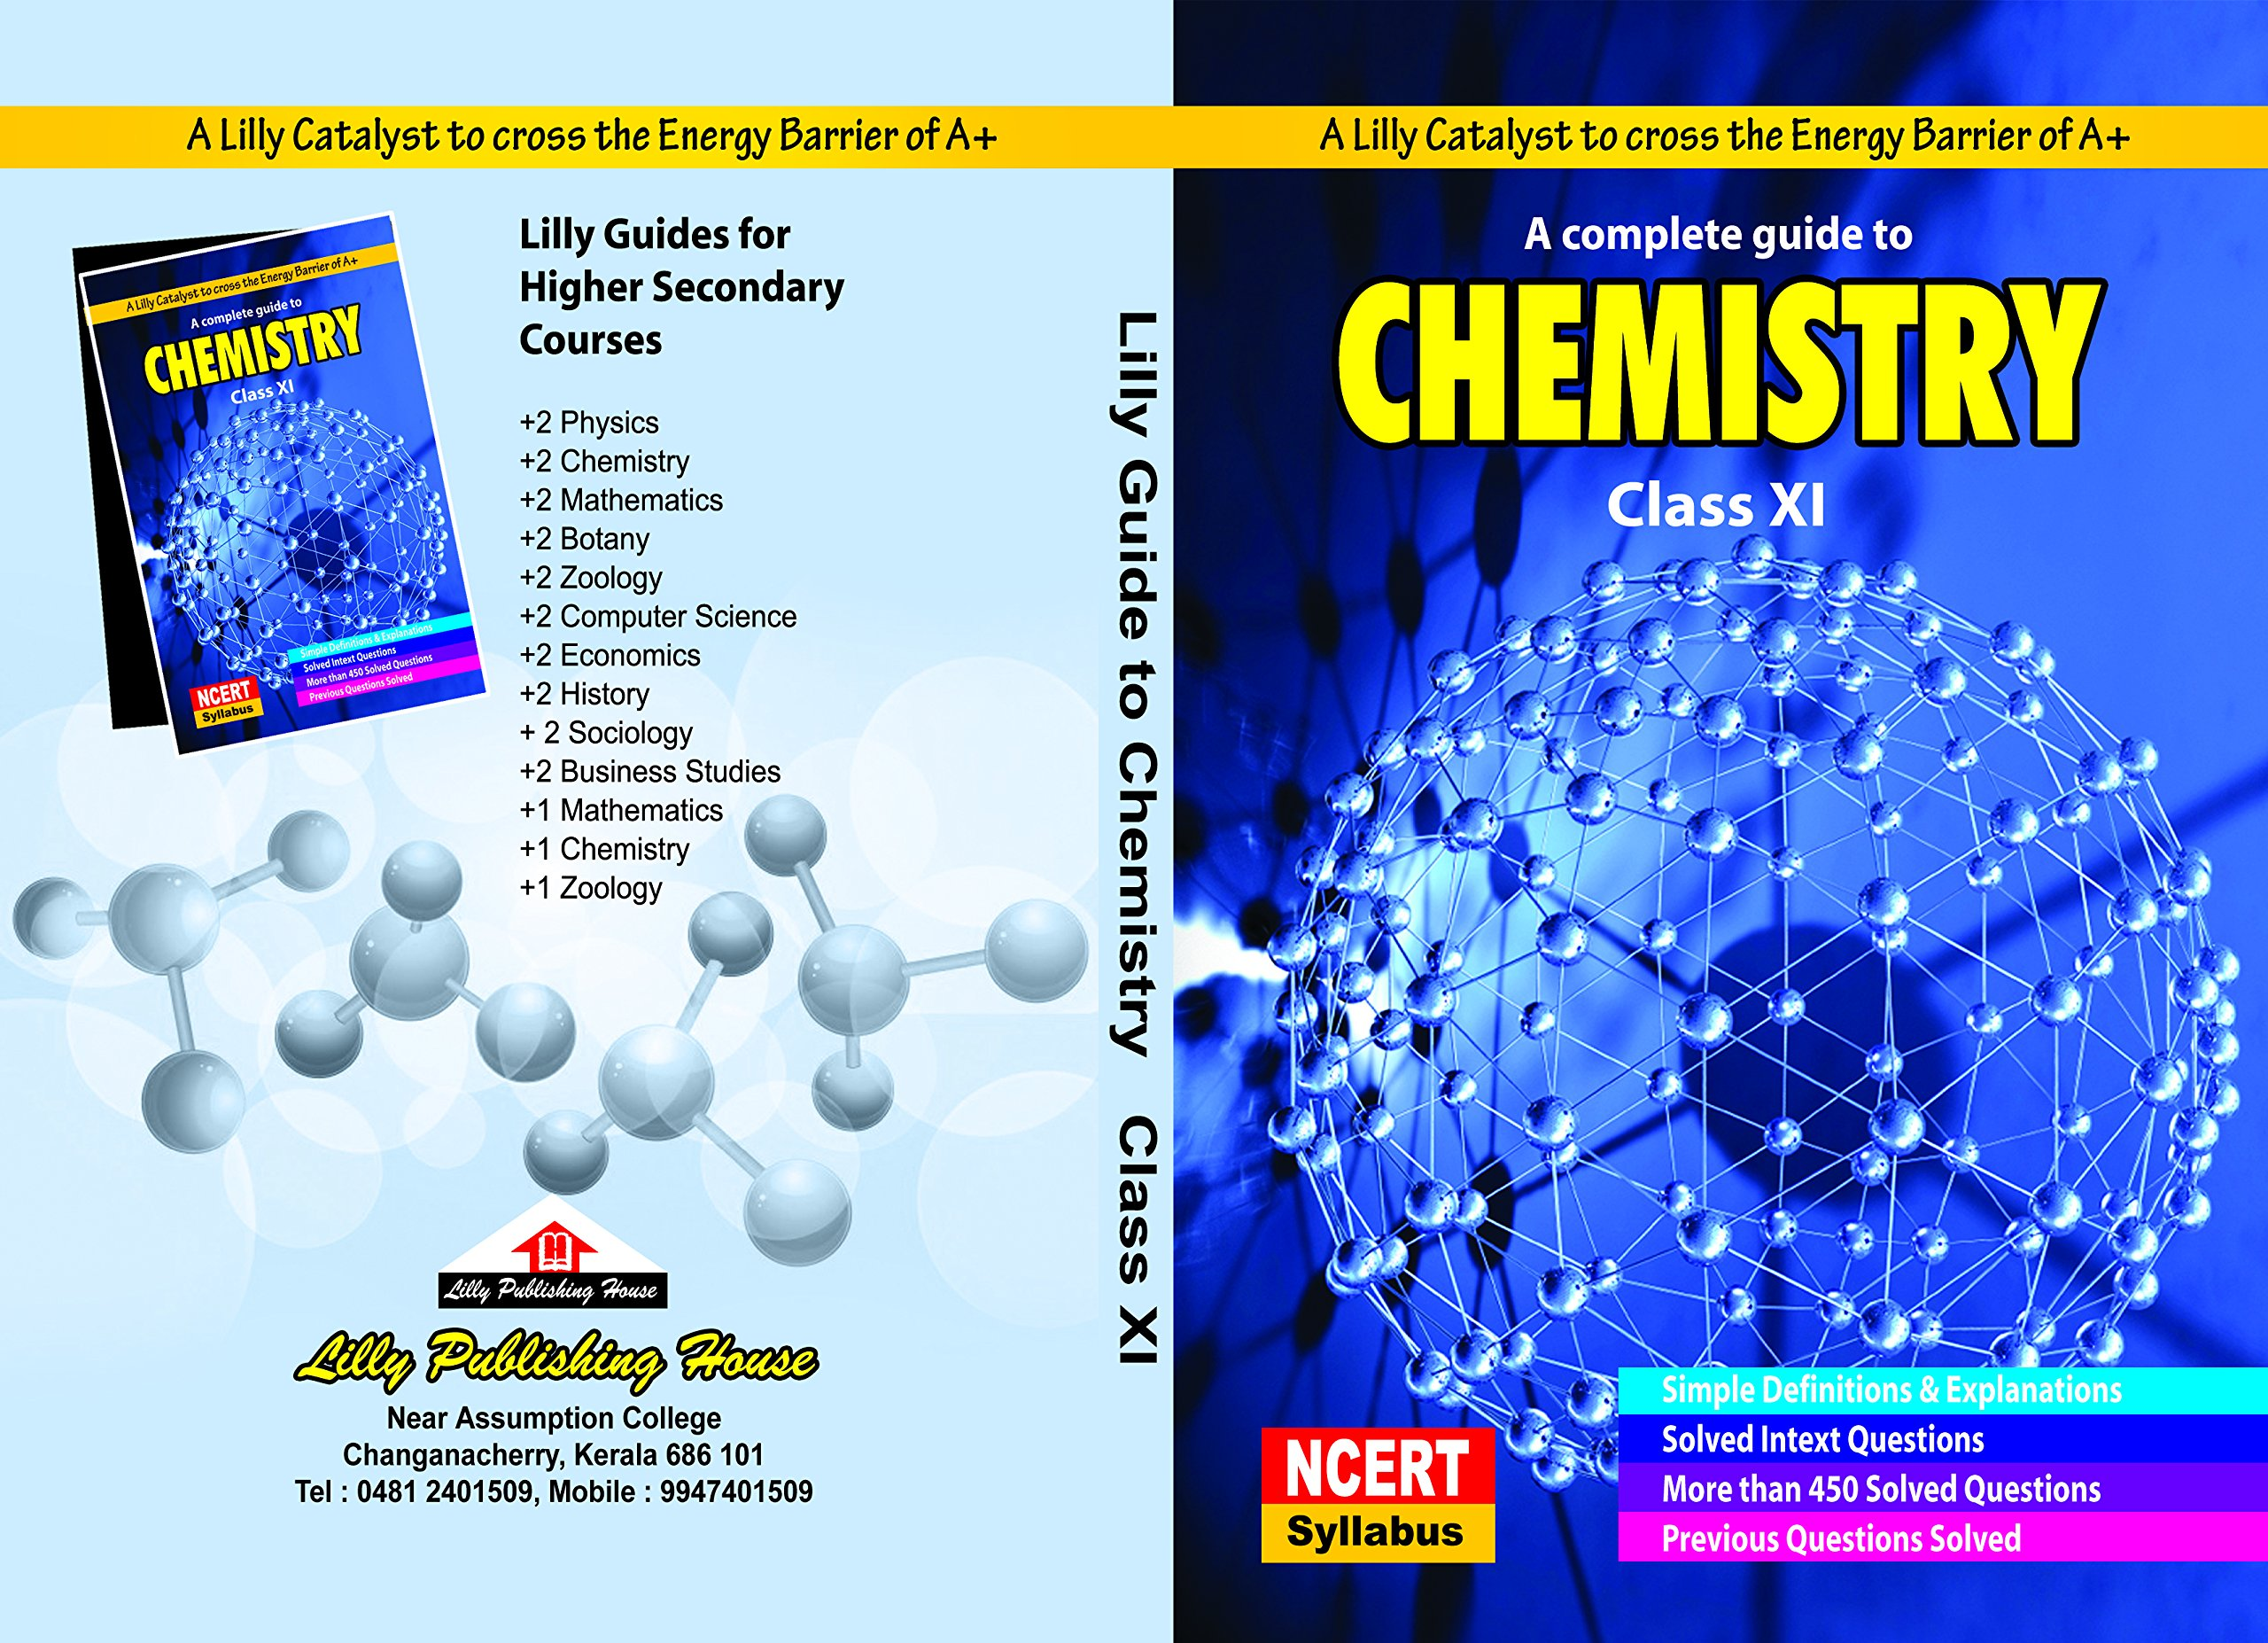 Buy Class XI CHEMISTRY GUIDE Book Online at Low Prices in India | Class XI  CHEMISTRY GUIDE Reviews & Ratings - Amazon.in